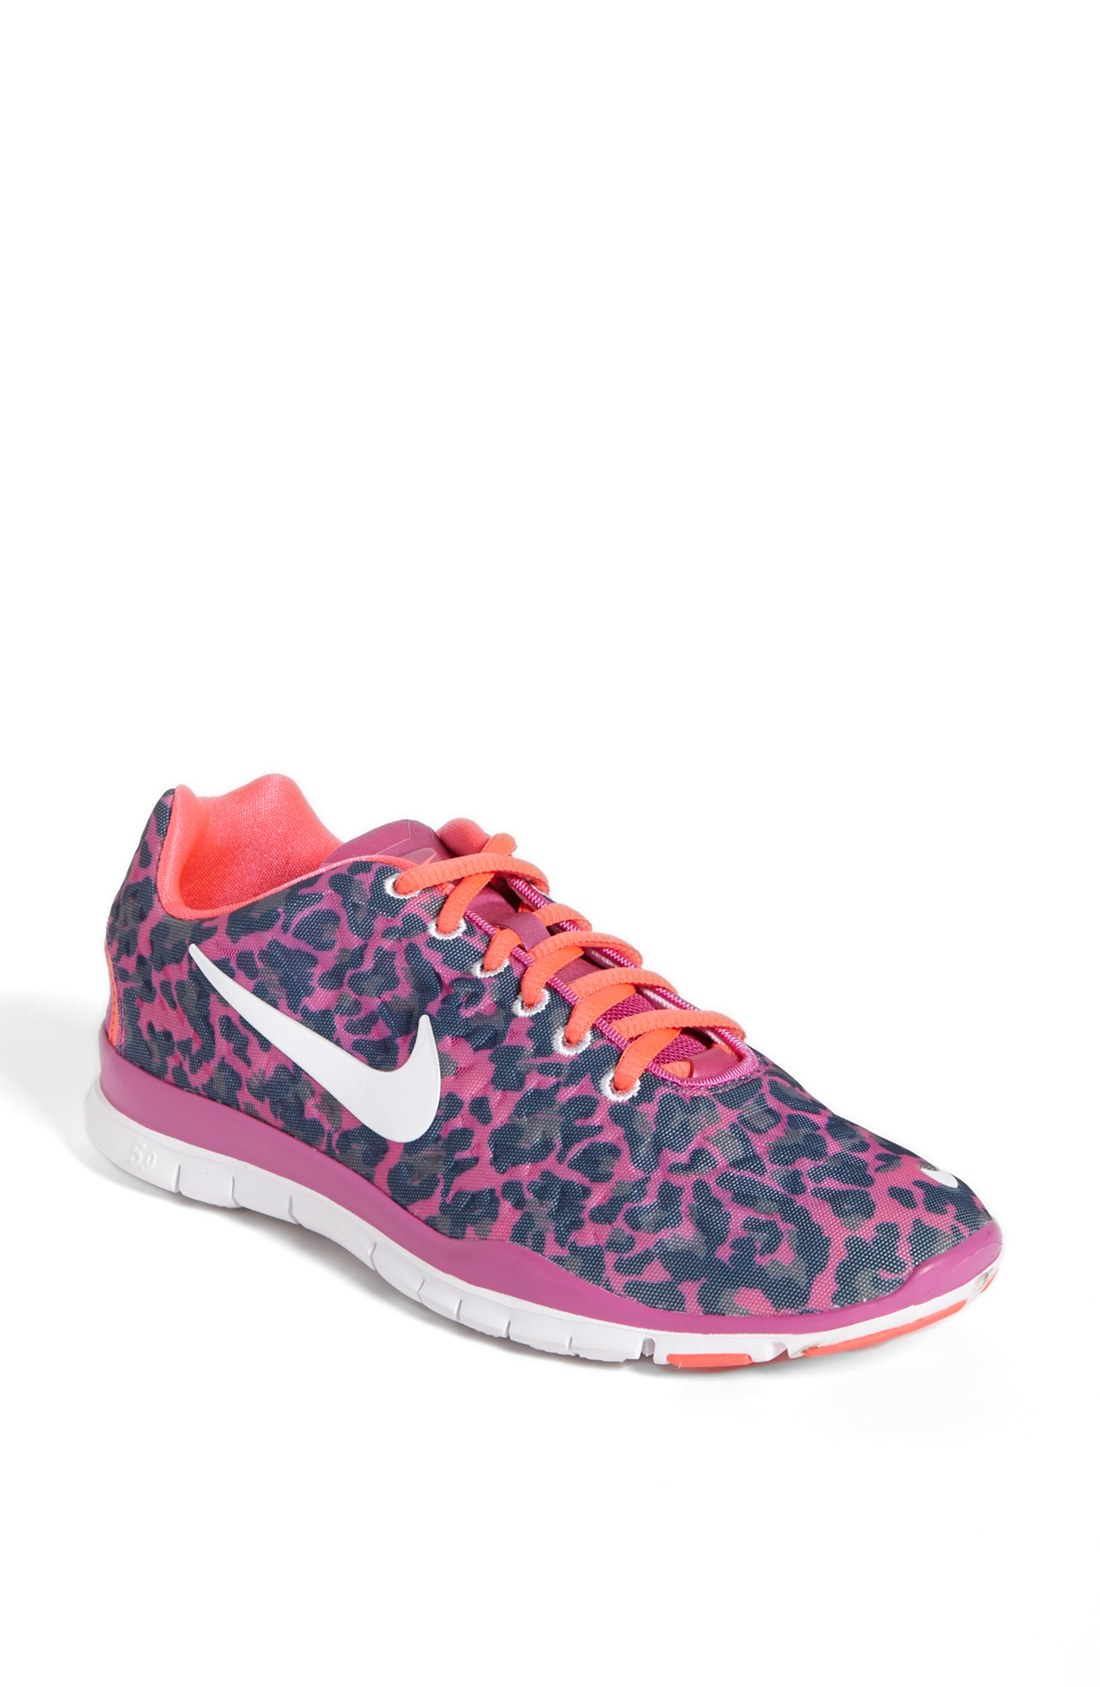 Nike Free Tr Fit 3 Print Training Shoe in Pink (Navy/ Pink ...